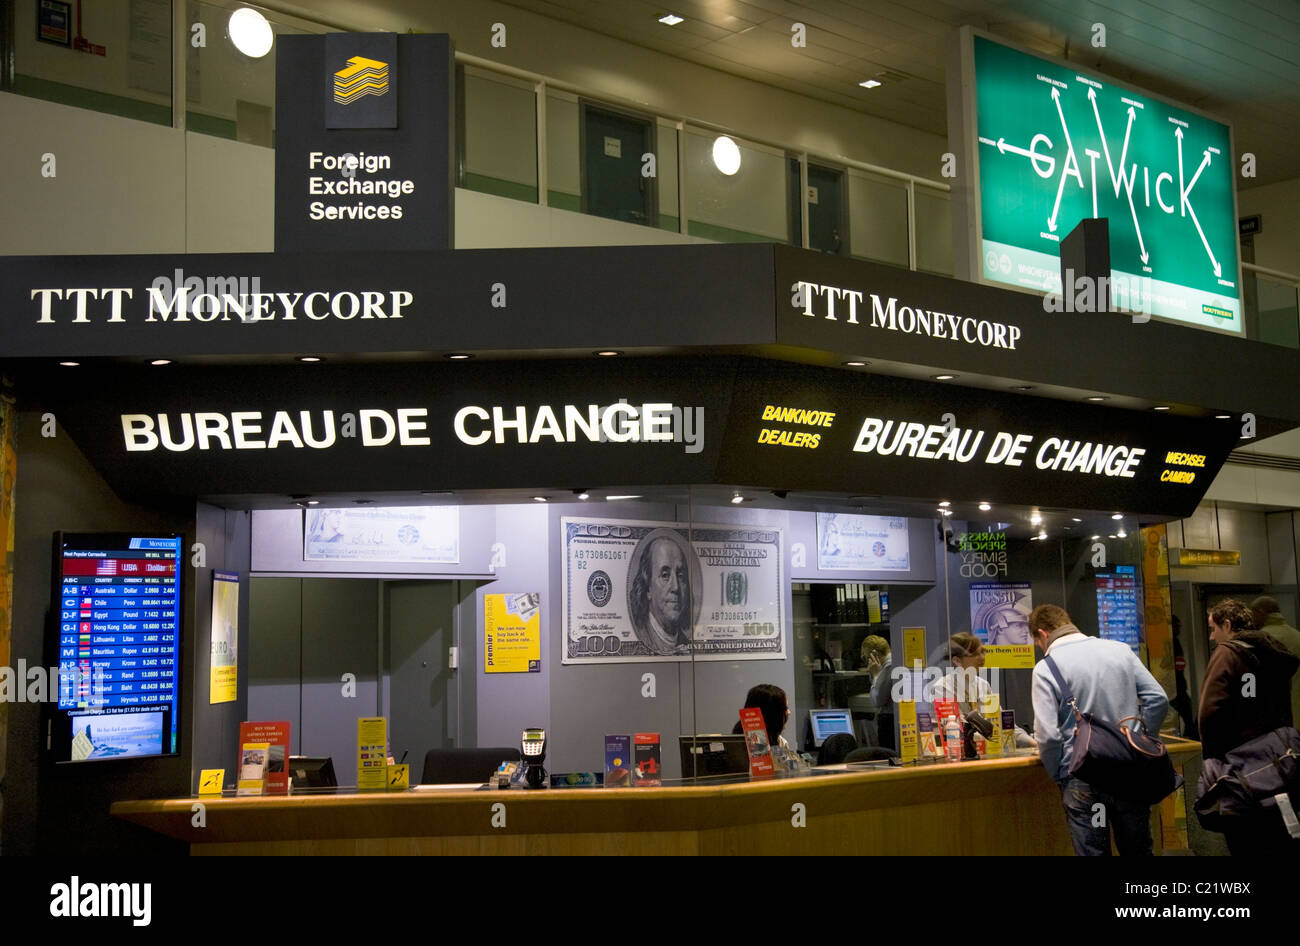 Ttt moneycorp bureau de change office flughafen gatwick south